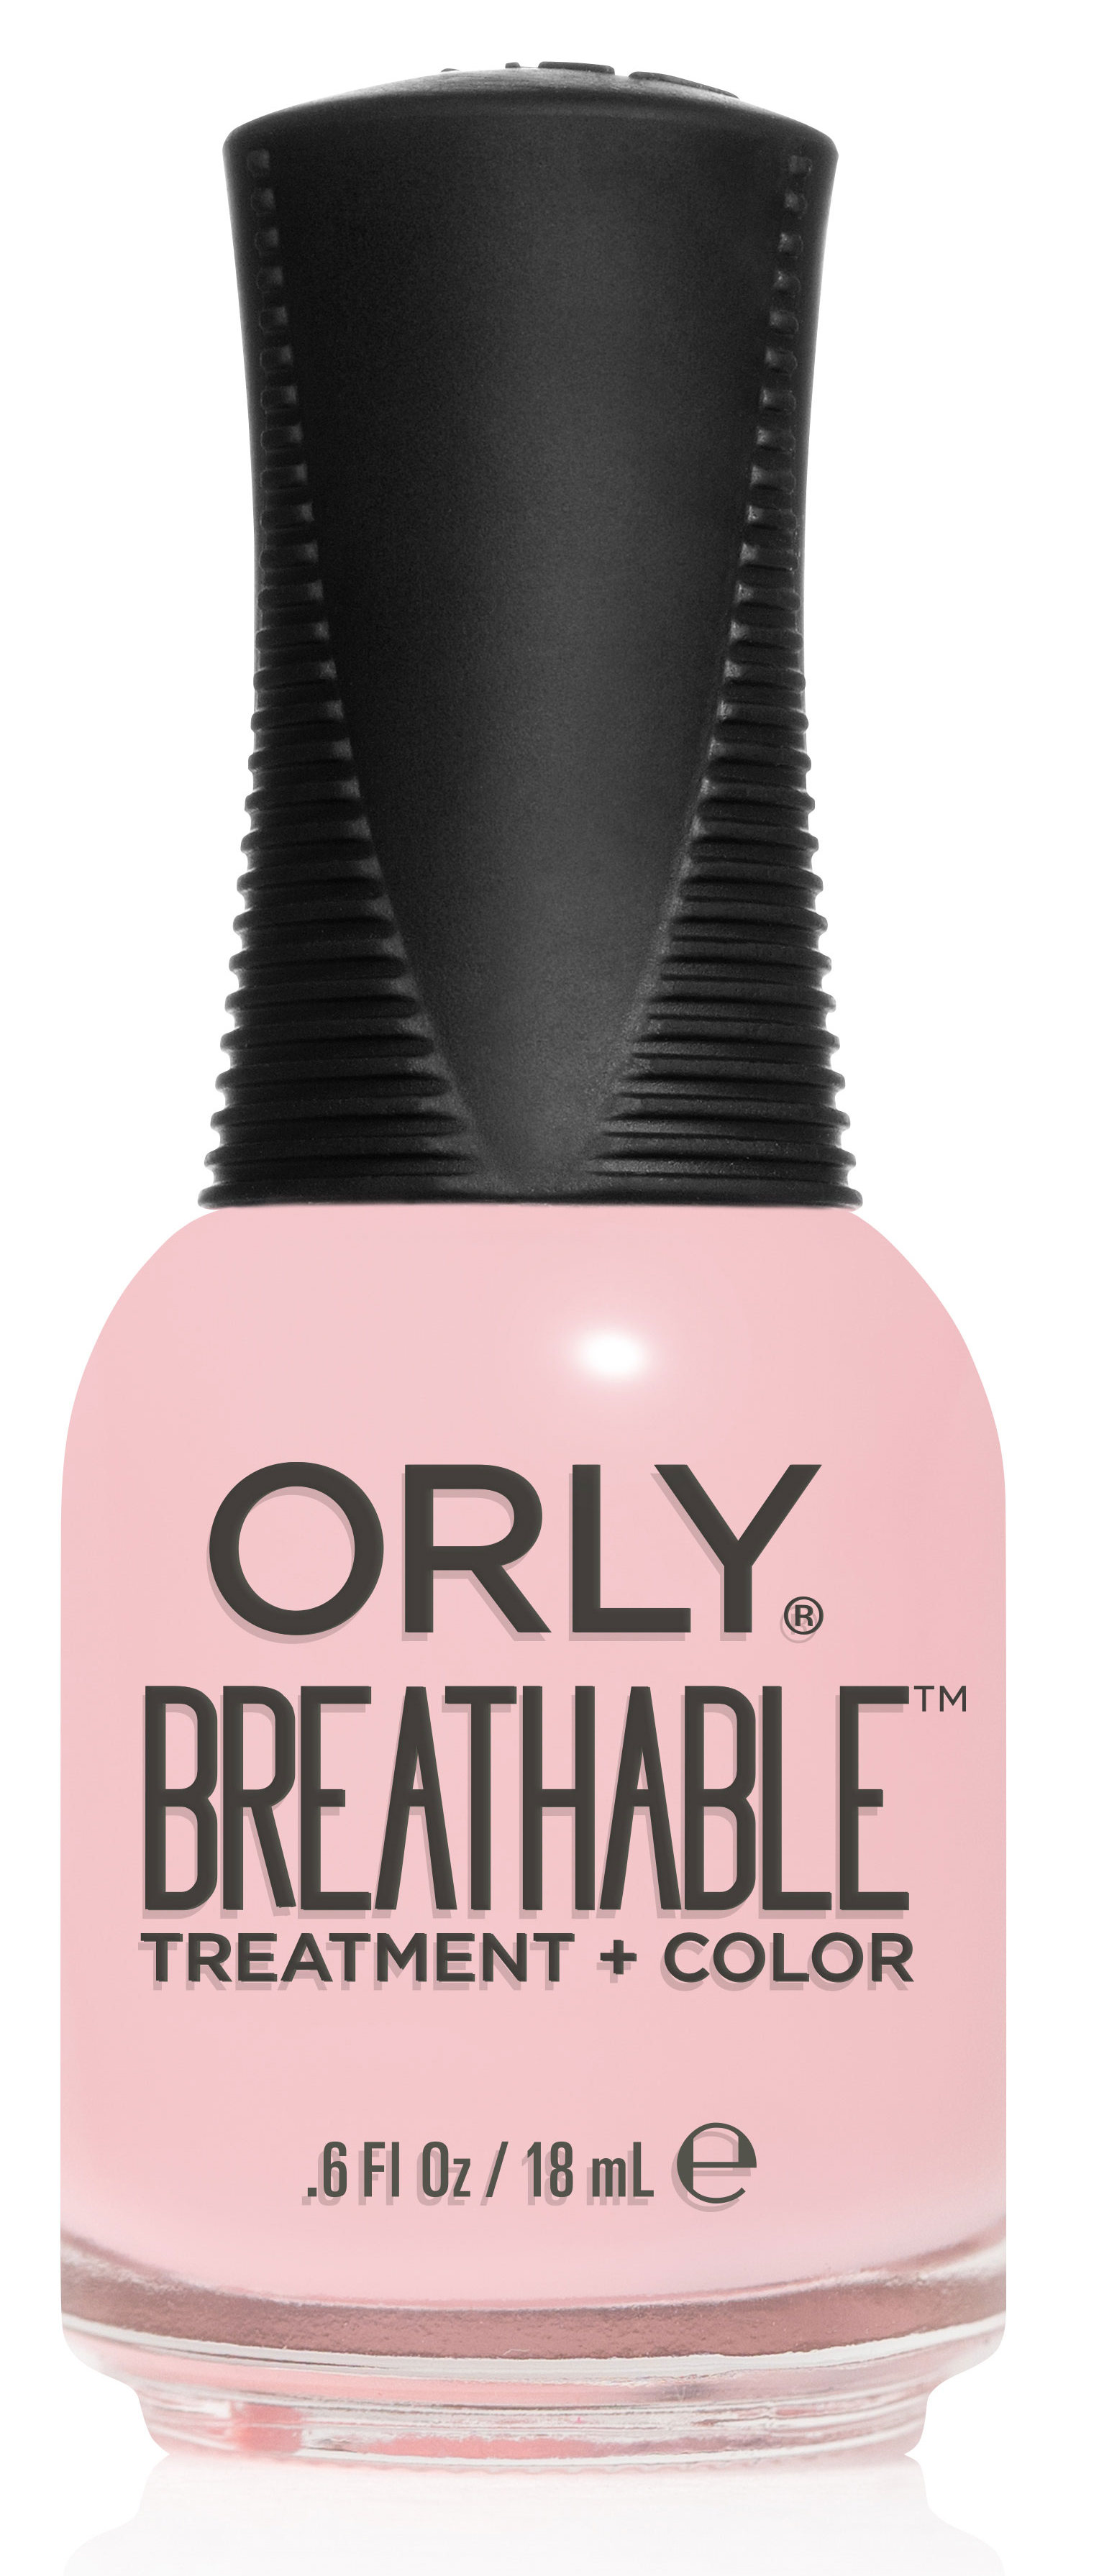 ORLY Лак для ногтей 953 KISS ME, I'M KIND / BREATHABLE 18 мл -  Лаки